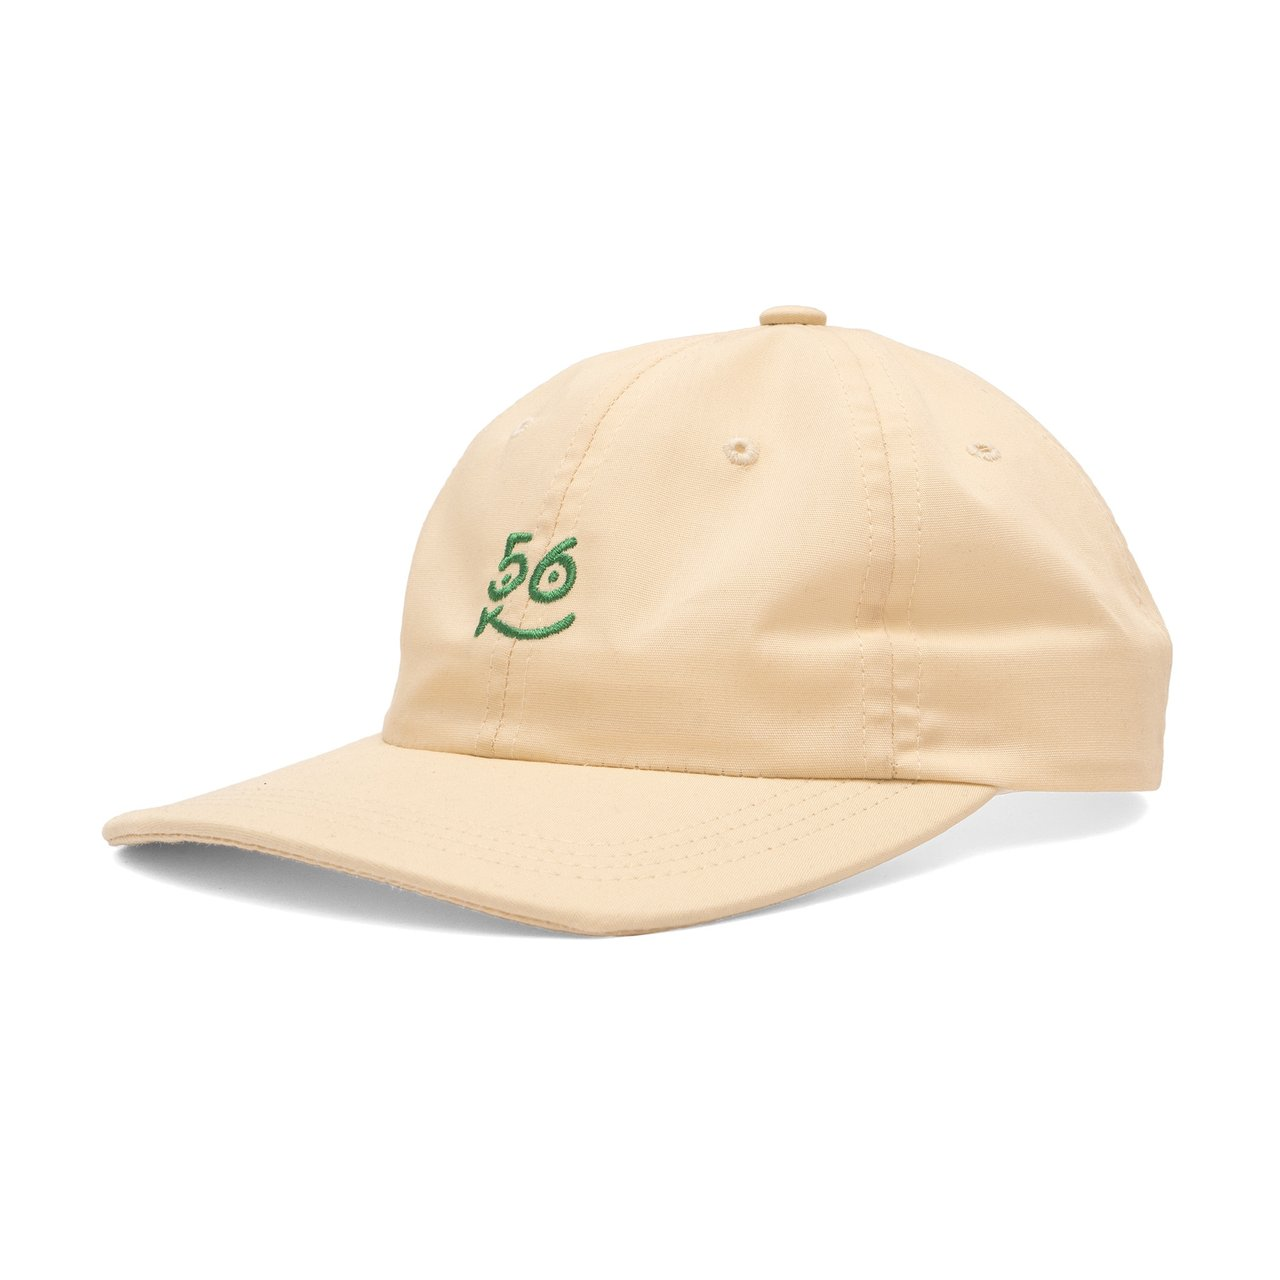 Bronze 56k smiley hat. Color light yellow. Green embroidered - Depop 1720339a5c3